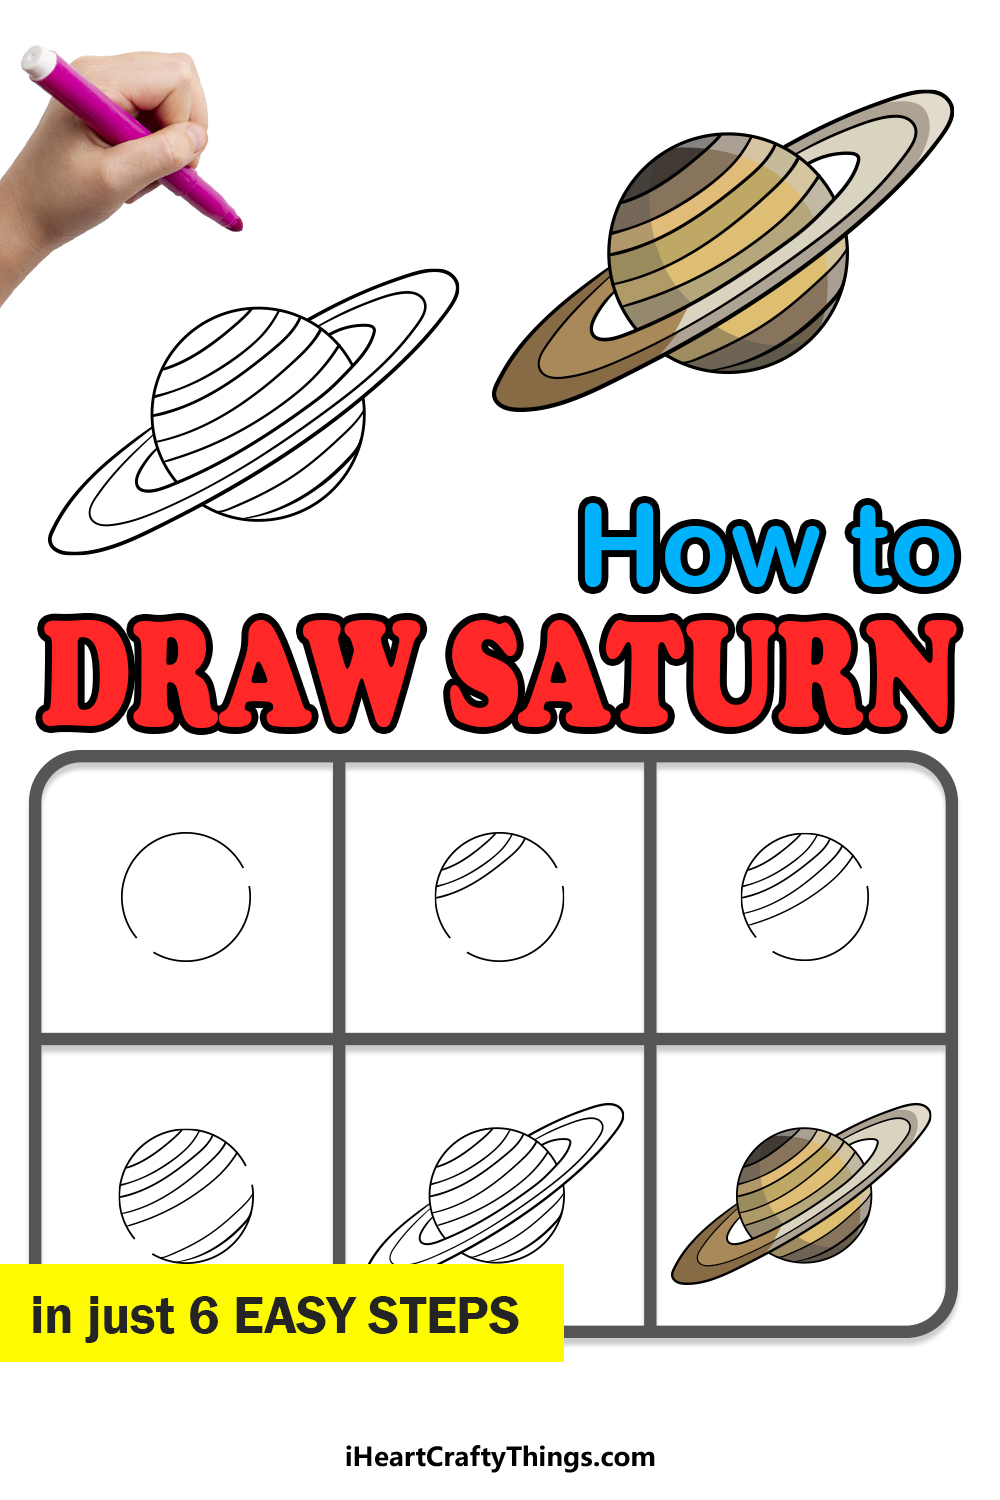 how to draw Saturn in 6 easy steps